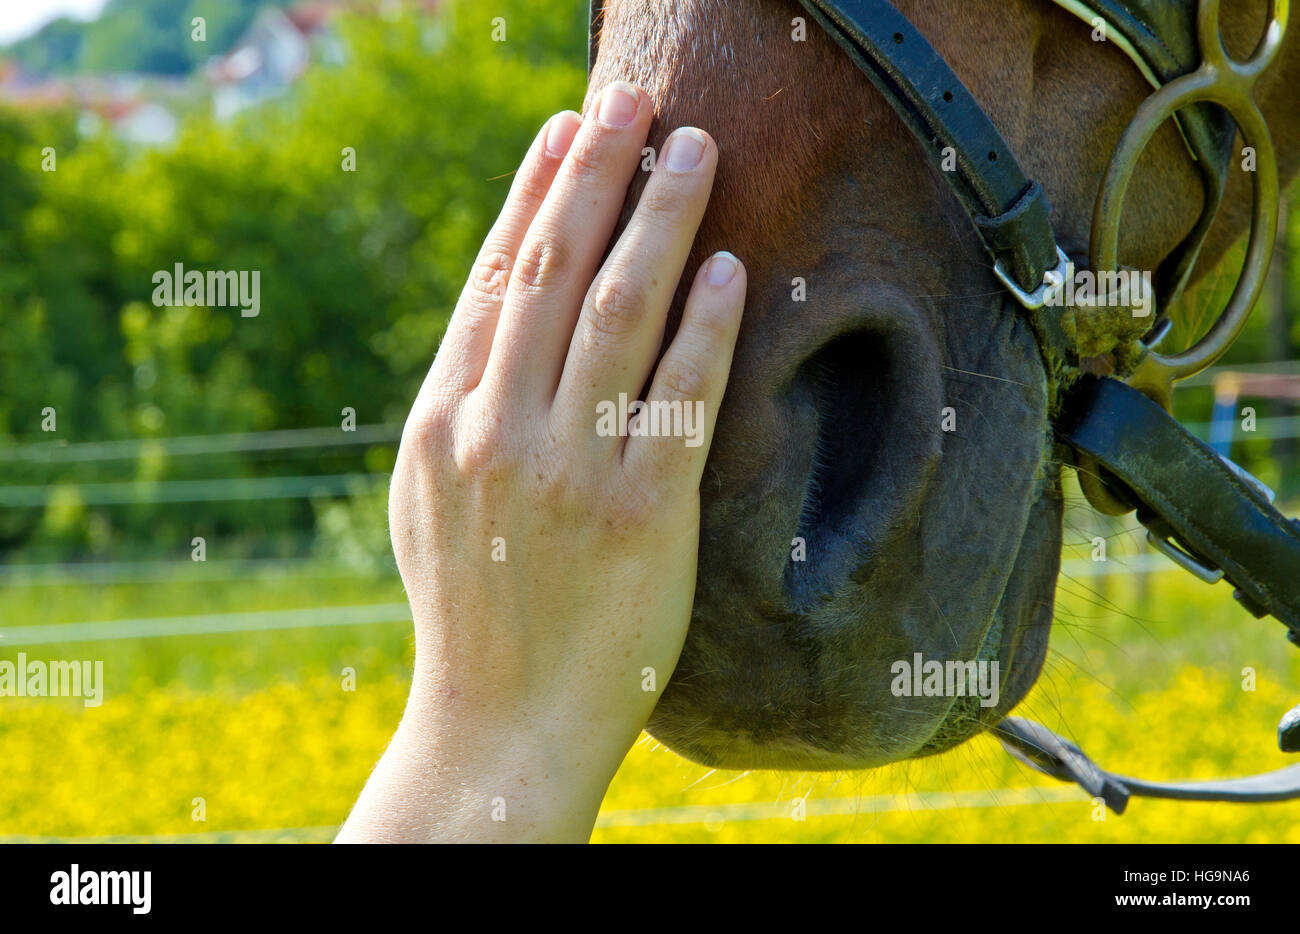 Hand of a woman makes a friendly gesture to a horse by stoking it's head - Stock Image